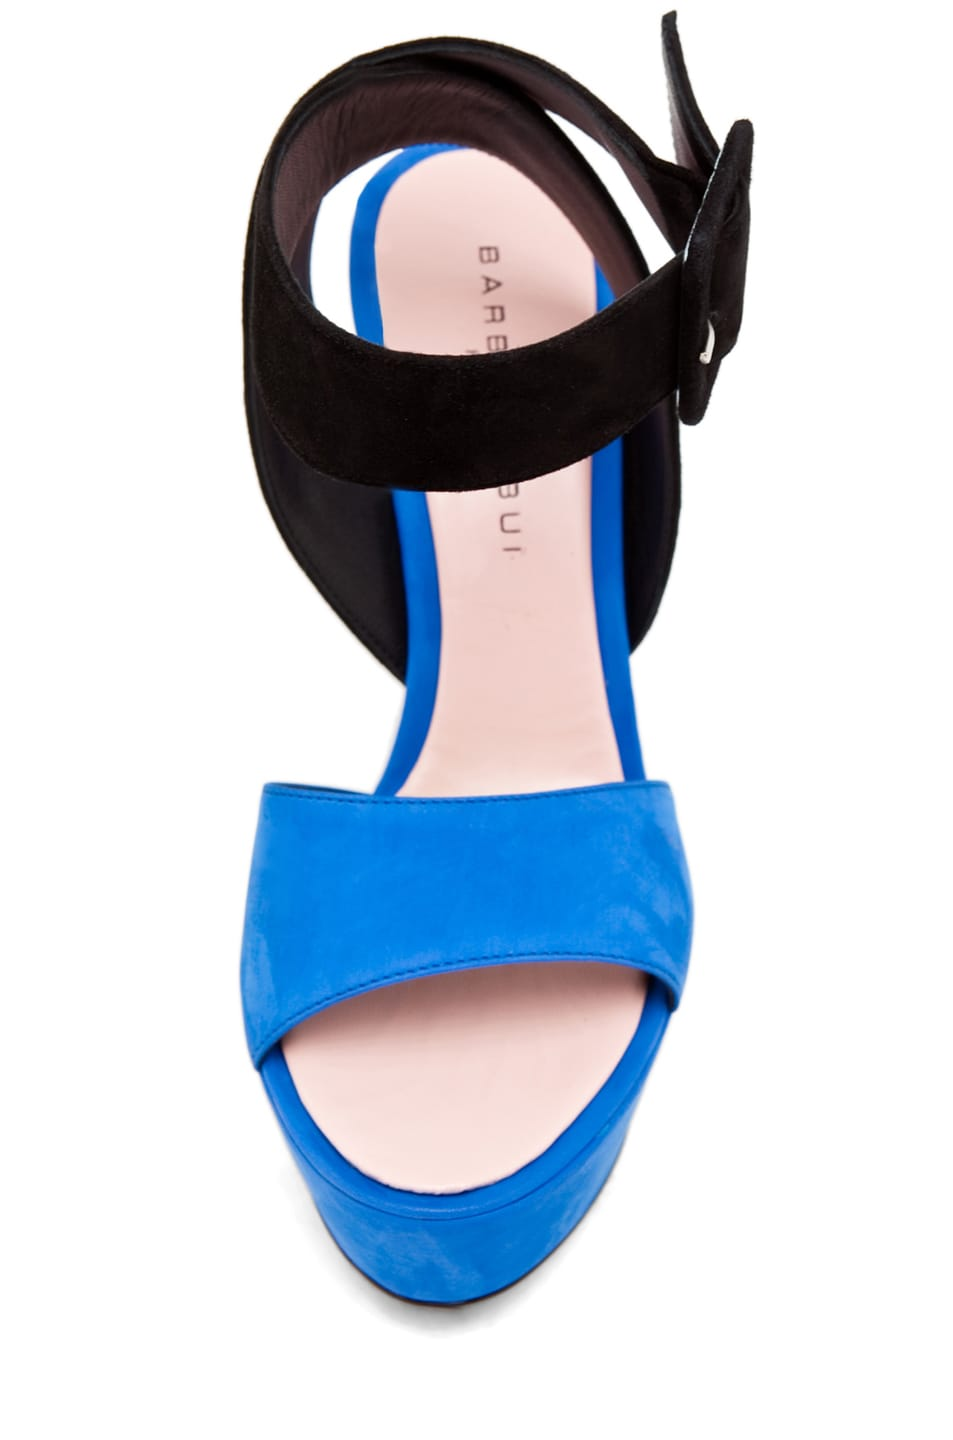 Image 4 of Barbara Bui Ankle Strap Heel Blue/Black